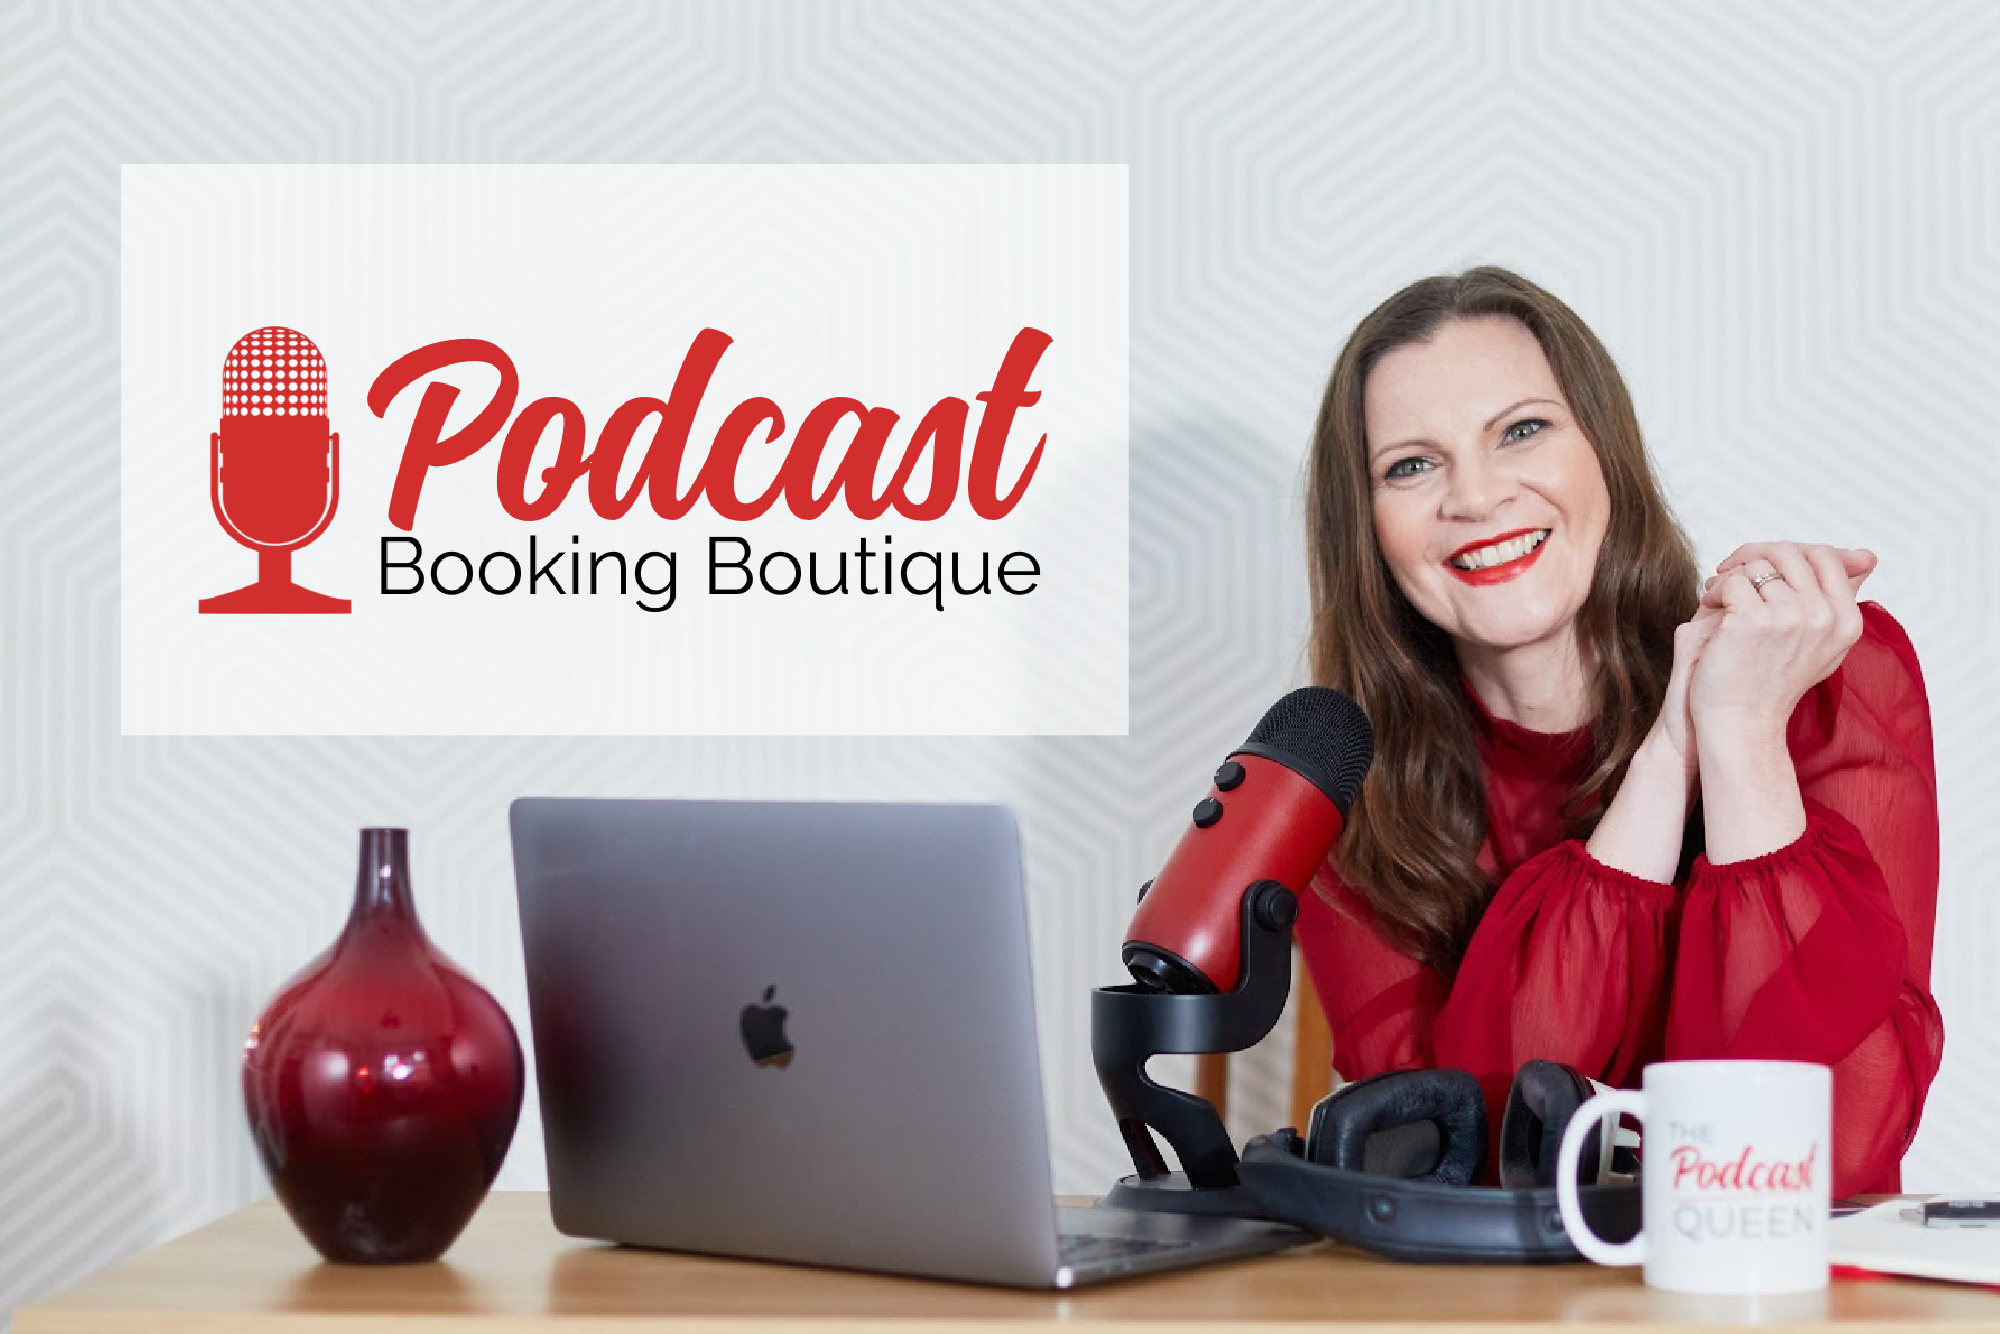 Podcast Booking Boutique Anna Image copy